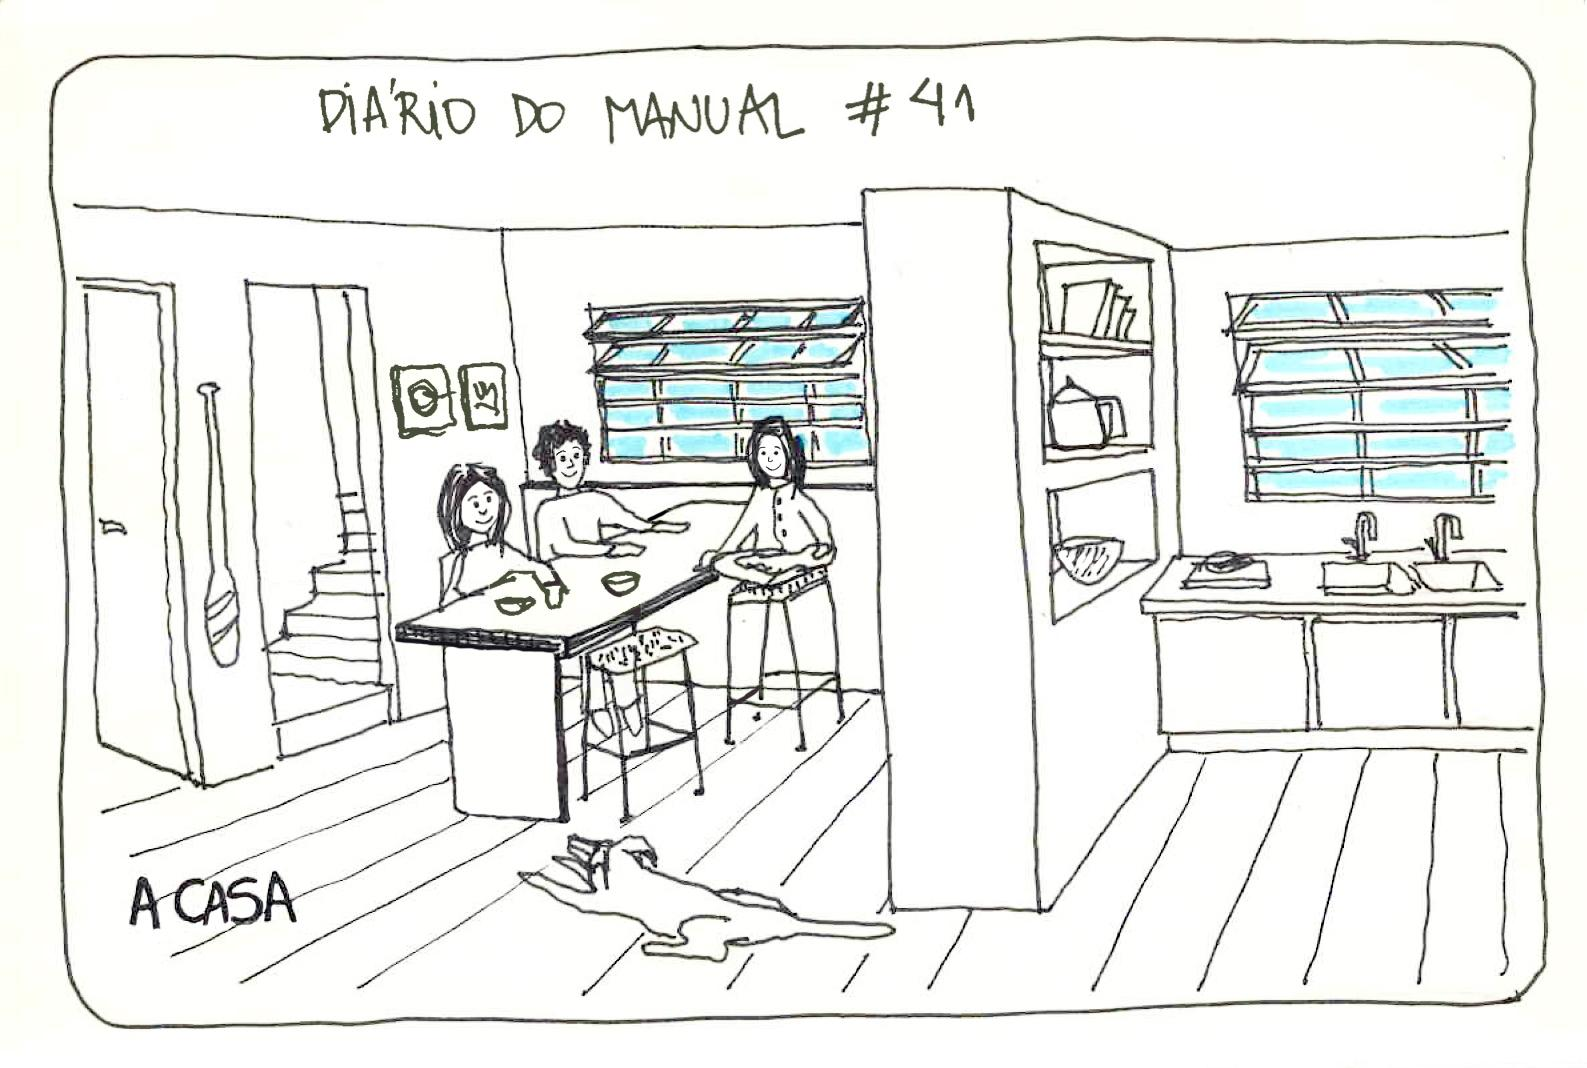 Diário do Manual #41